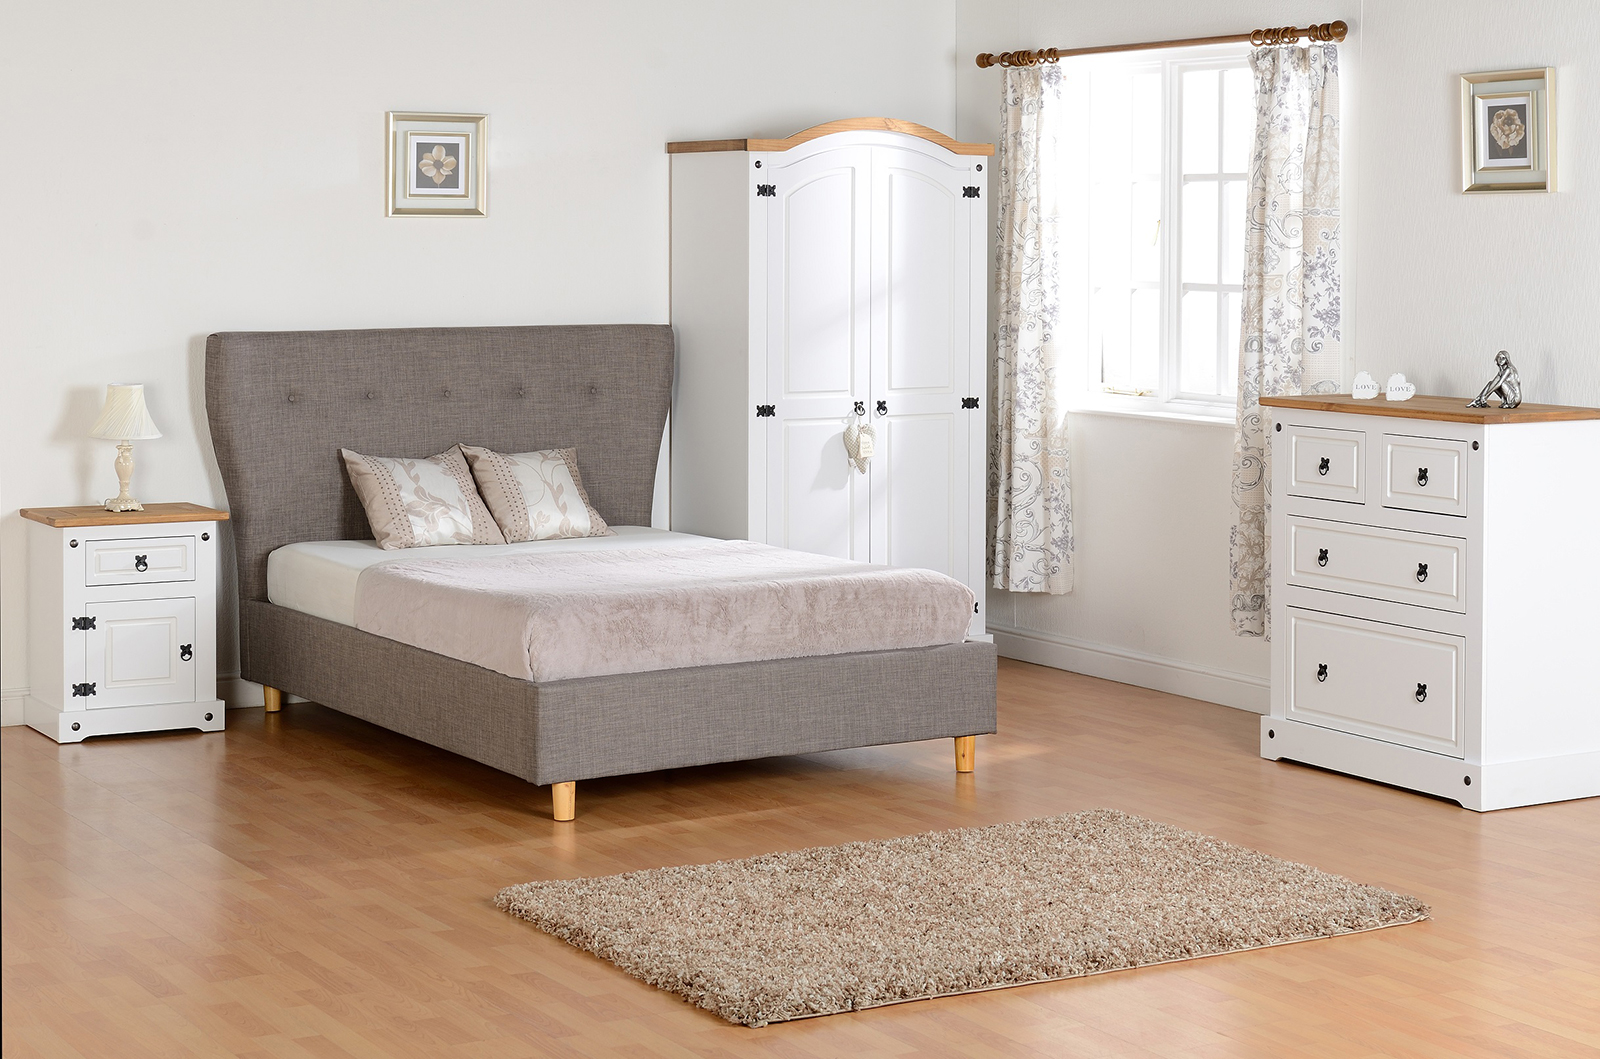 Corona trio set white waxed pine factory bedrooms - White and pine bedroom furniture ...